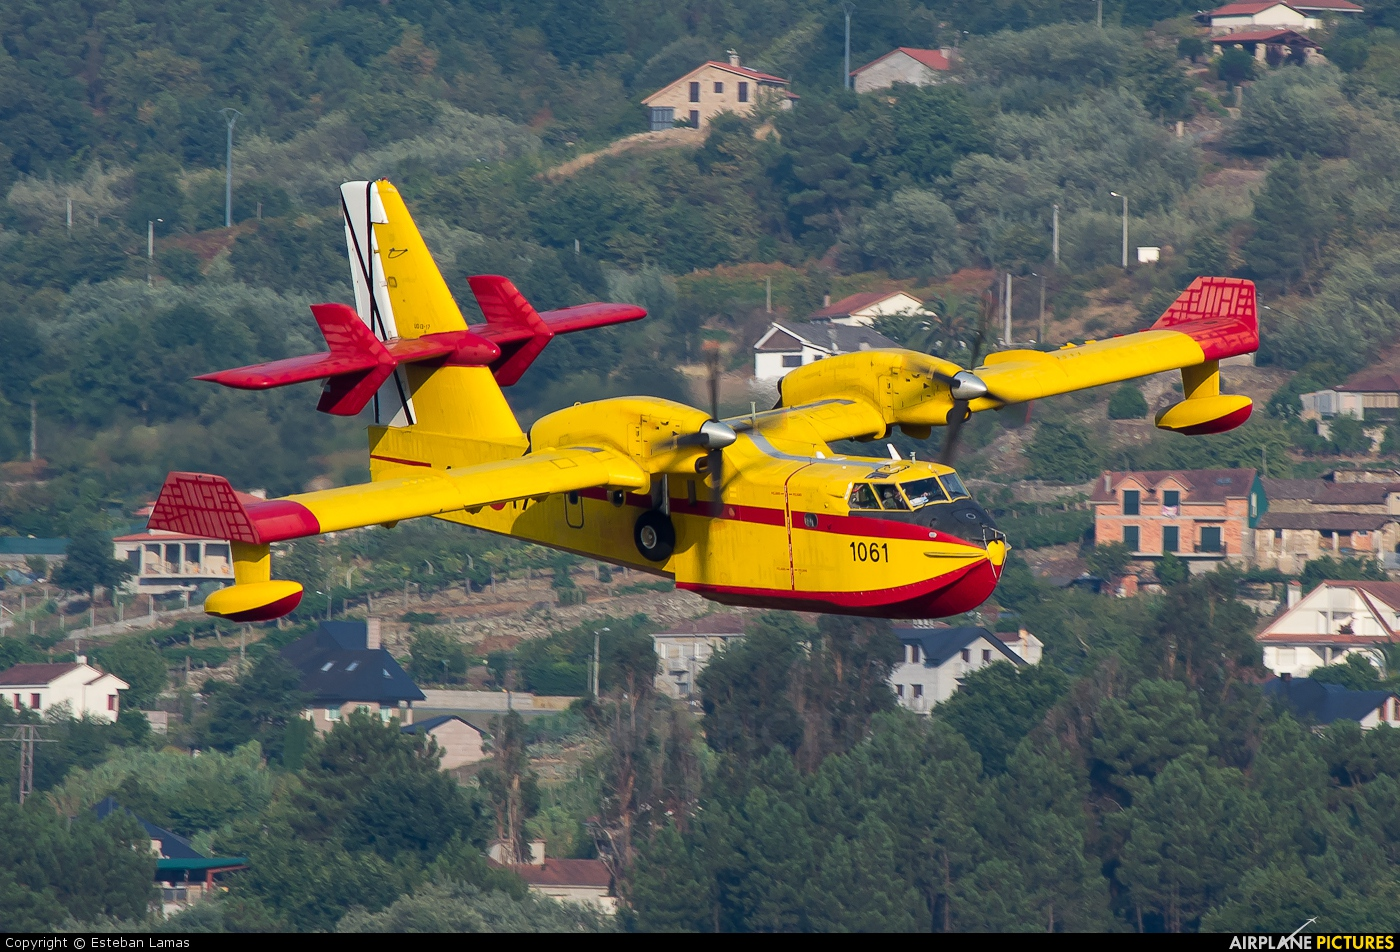 Spain - Air Force UD.13-17 aircraft at Off Airport - Spain